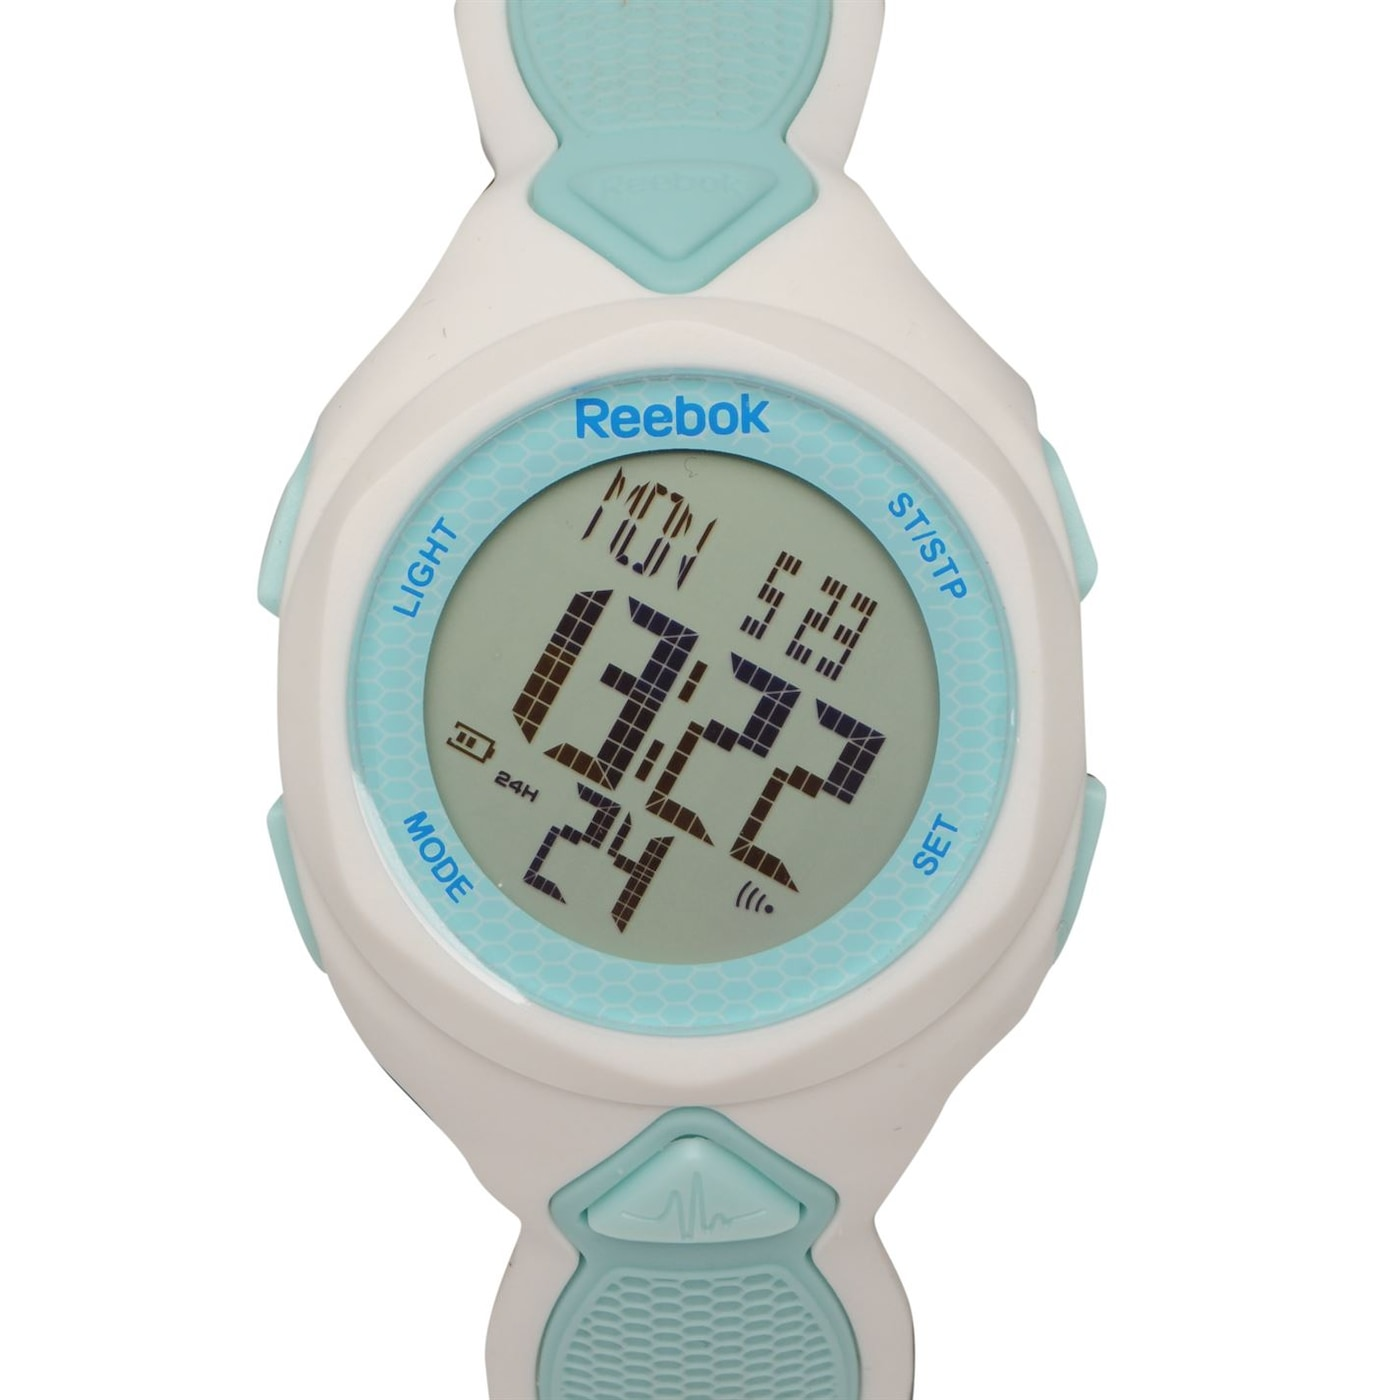 Reebok Workout Heart Rate Monitor Watch